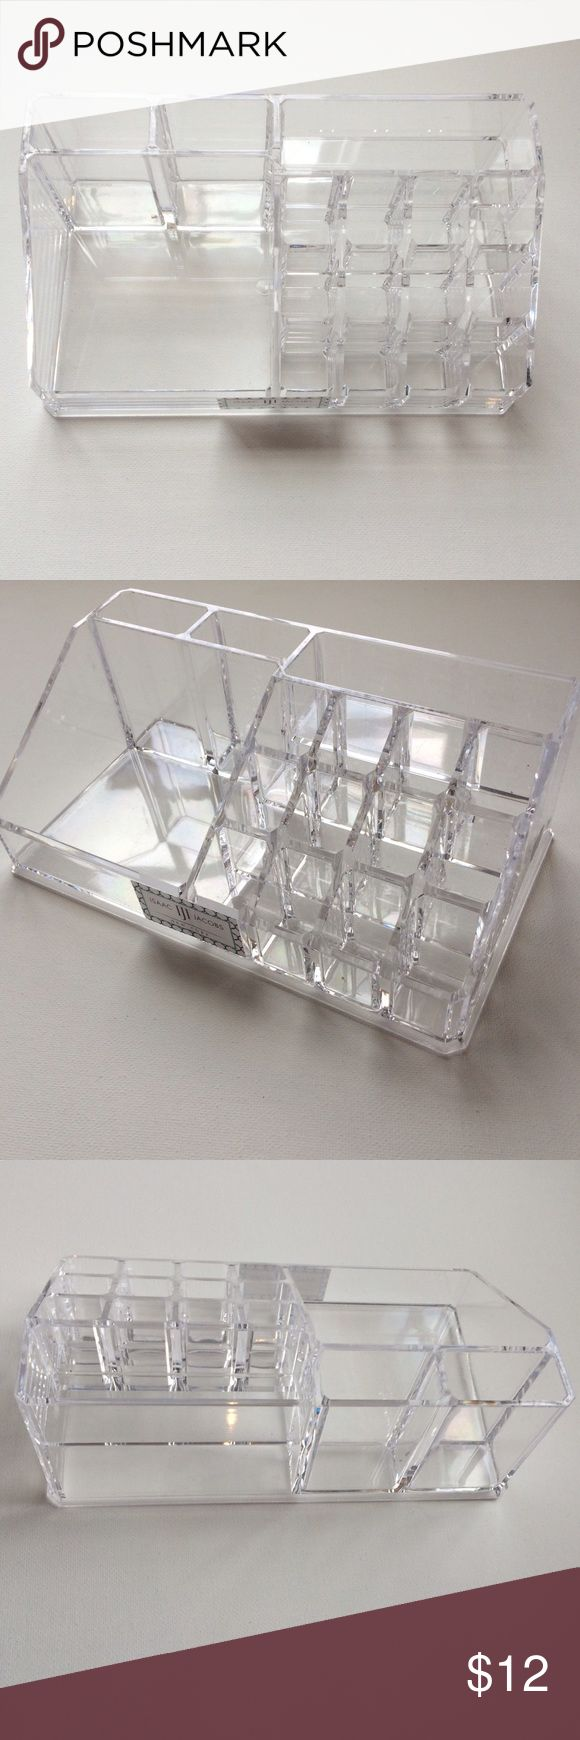 """Isaac Jacobs Acrylic Organizer Acrylic organizer that contains 16 compartments for toiletries, make up, or tools. Measures 5"""" x 8.5"""" Barely used because I don't own enough lipsticks or make up to really use it. Minor scratches that aren't really noticeable. Great condition! Isaac Jacobs Accessories"""